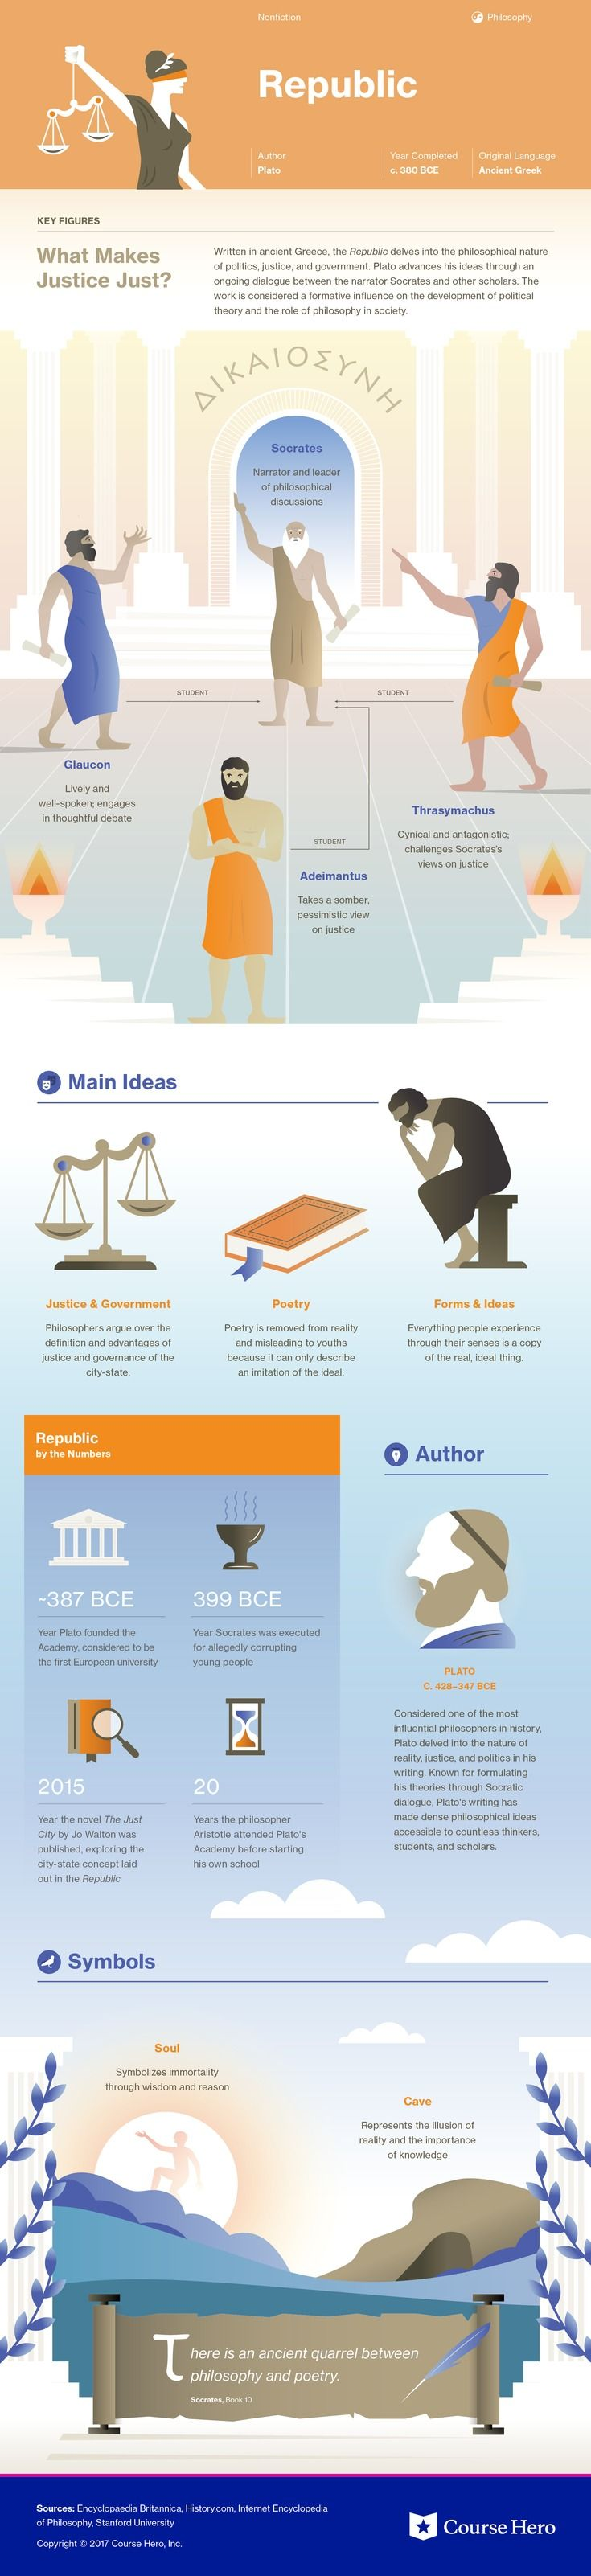 This @CourseHero infographic on The Republic is both visually stunning and informative!